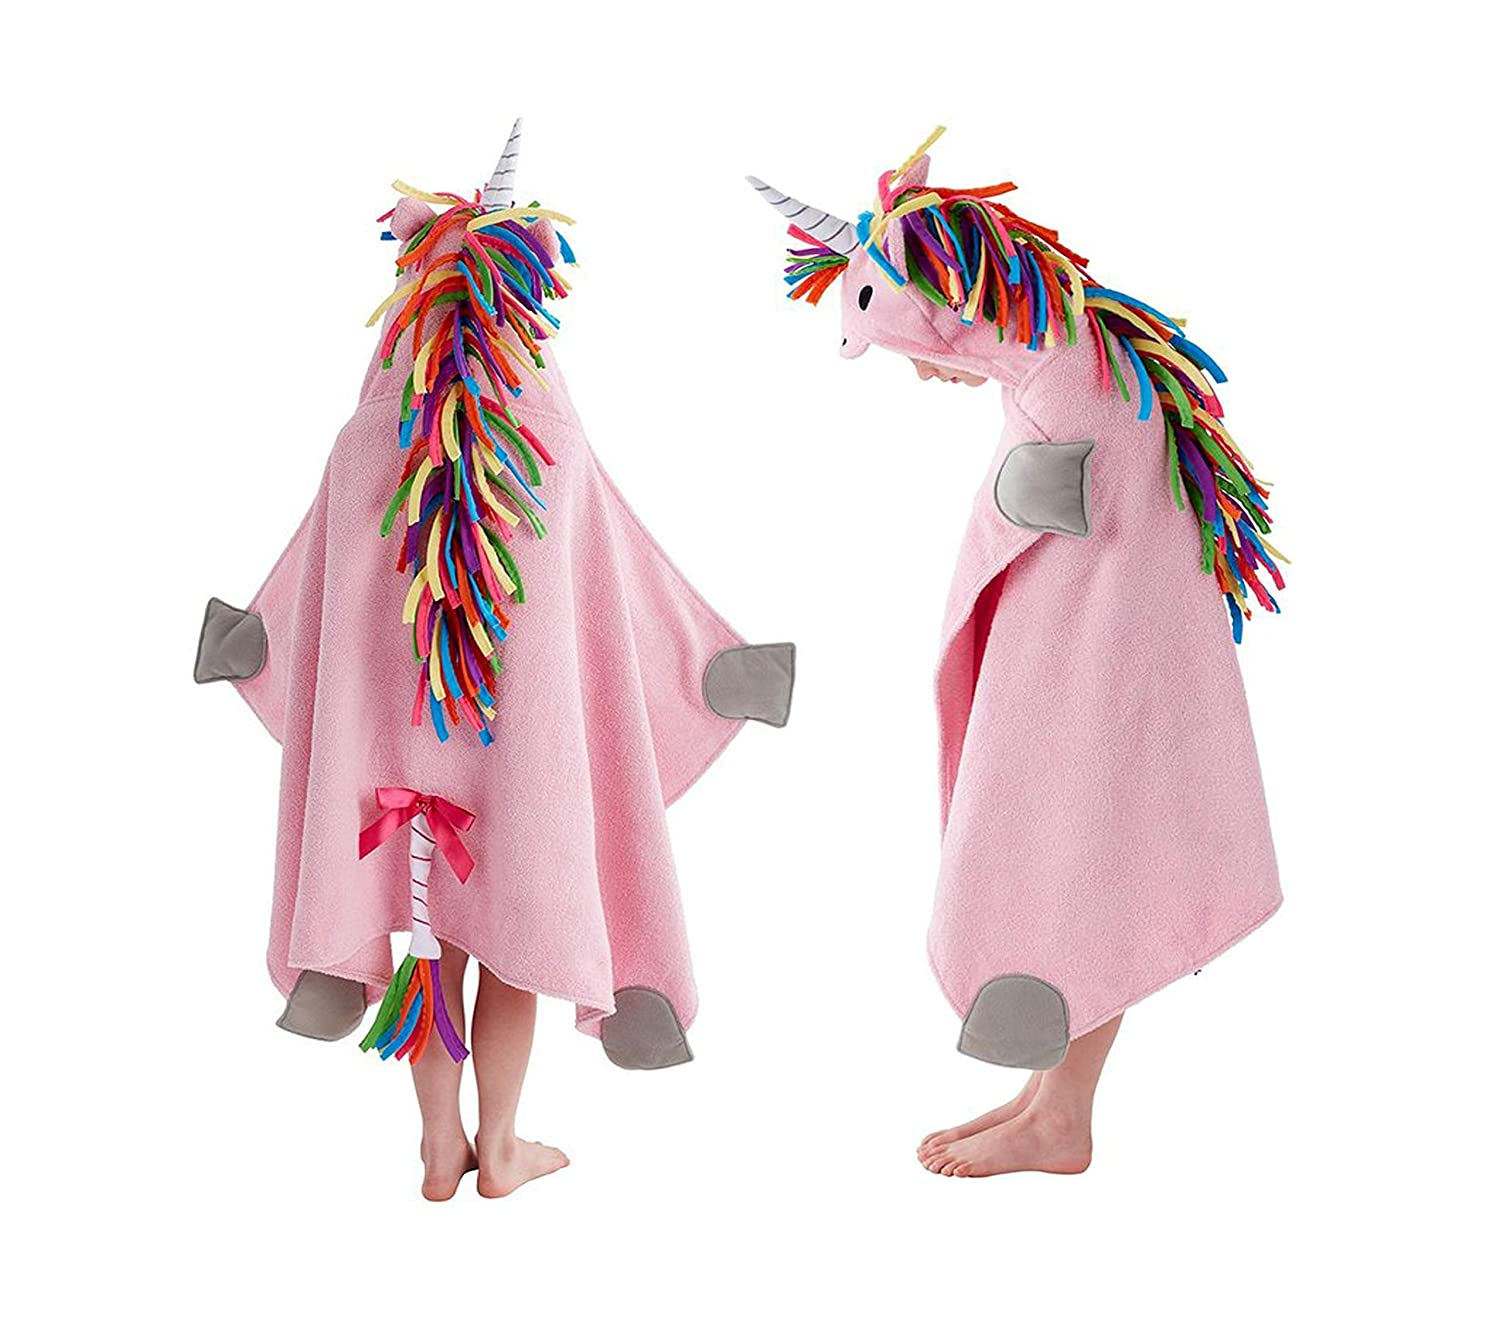 500 - Unicorn Hooded Towel for Dramatic Play, Bath, Beach and Pool (Fits Babies and Children up to 10 Years Old) (Pink) China